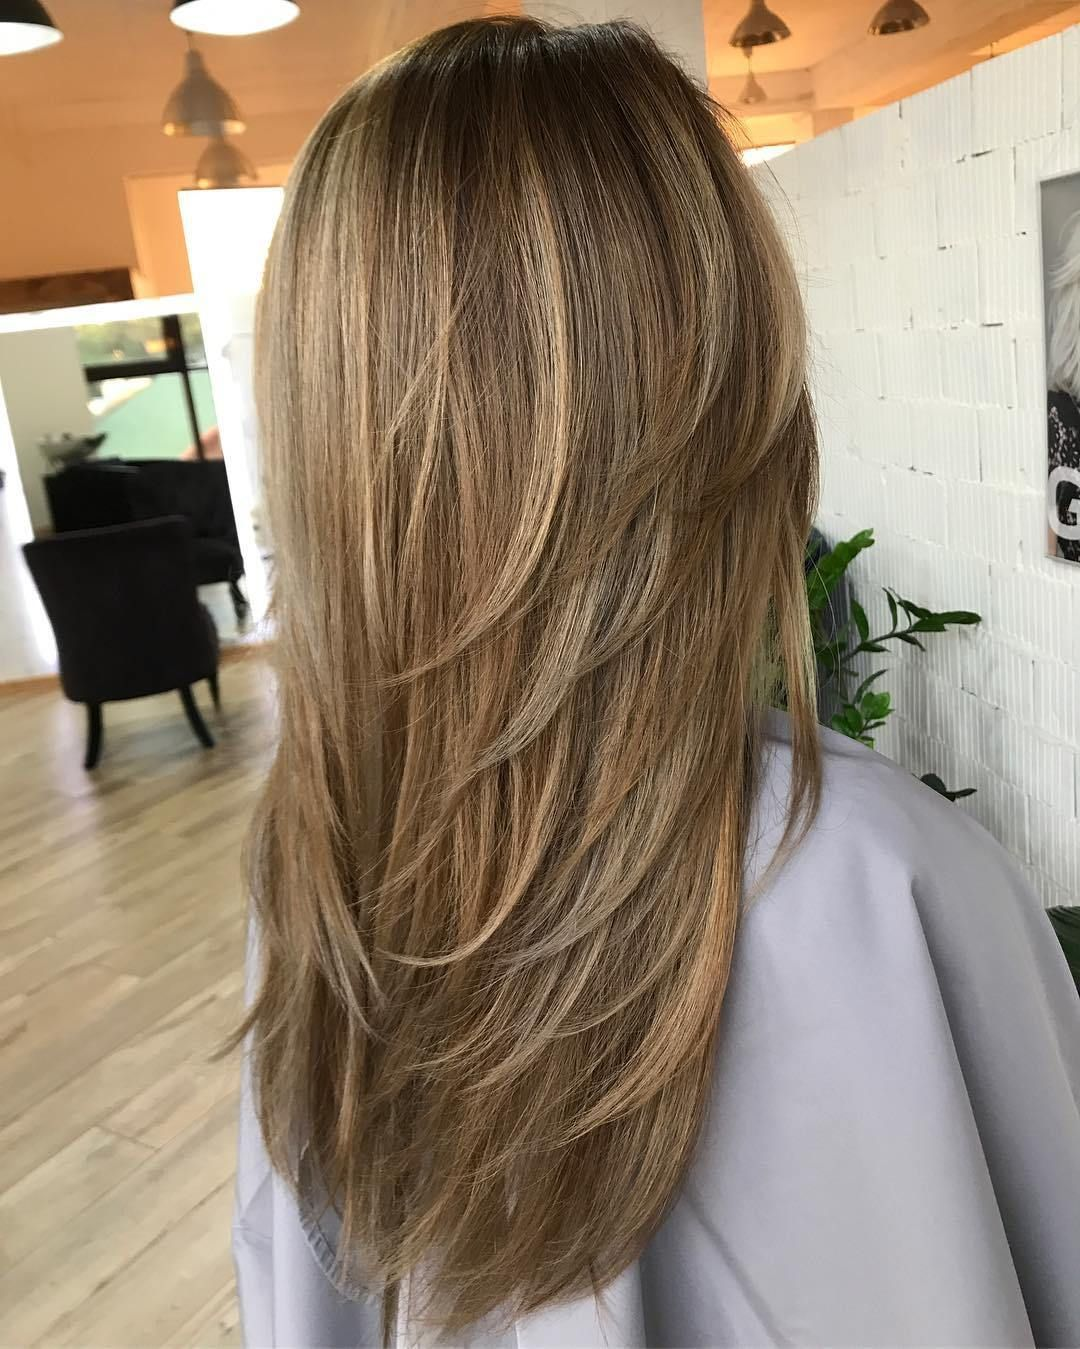 cutting style for long hair 80 layered hairstyles and cuts for hair 2018 7815 | e12cf6f87b368c45a209a8010bf3d31c